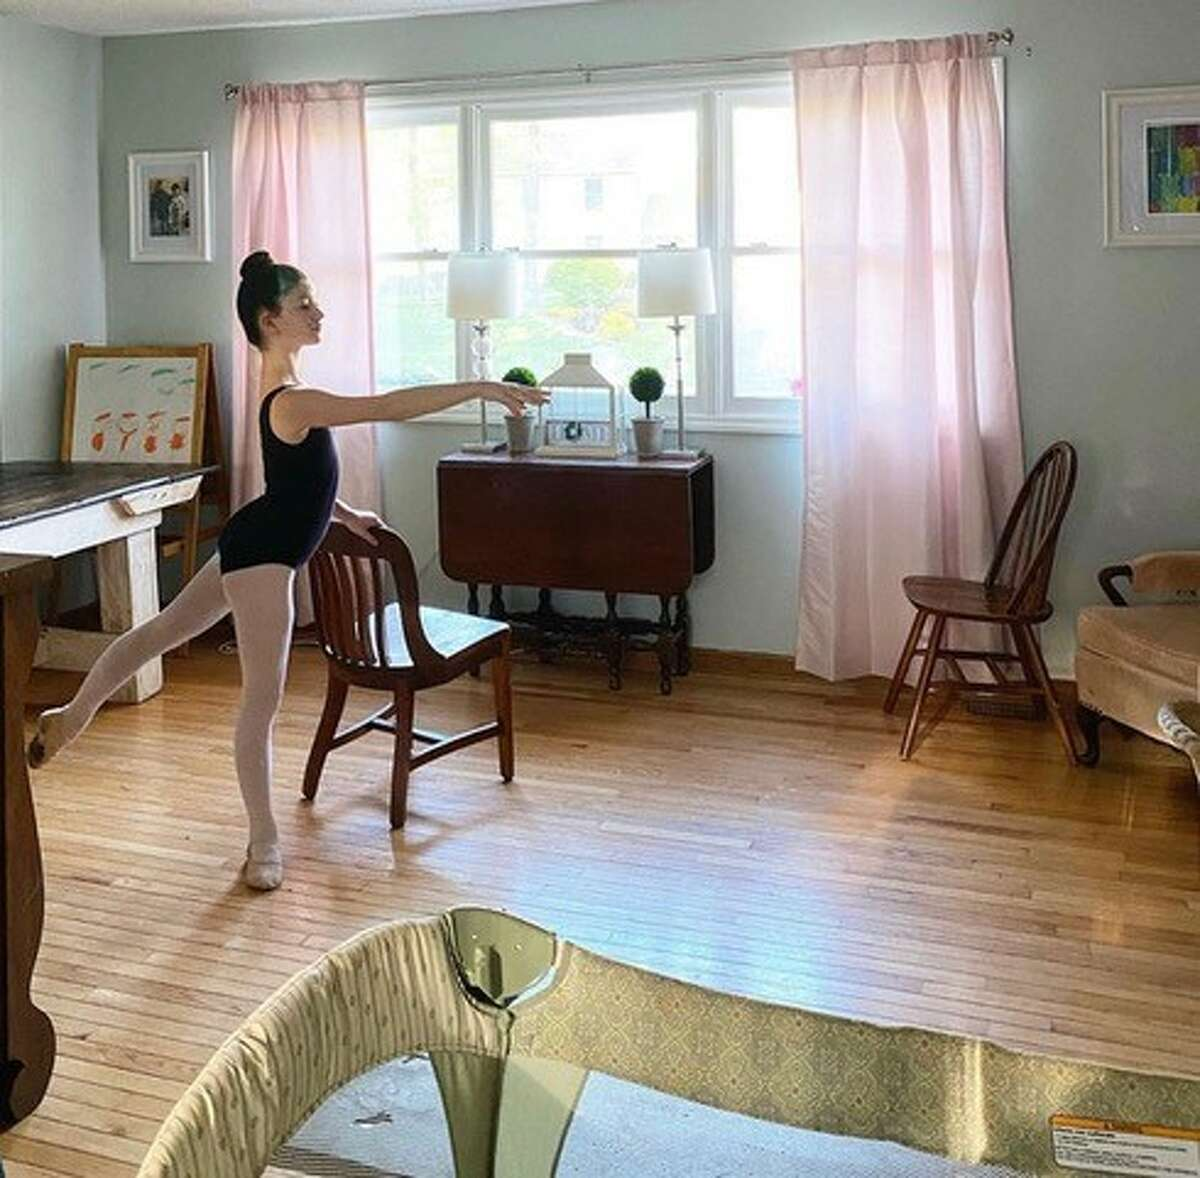 Leven O'Keefe practices in her family's dining room in Schenectady.